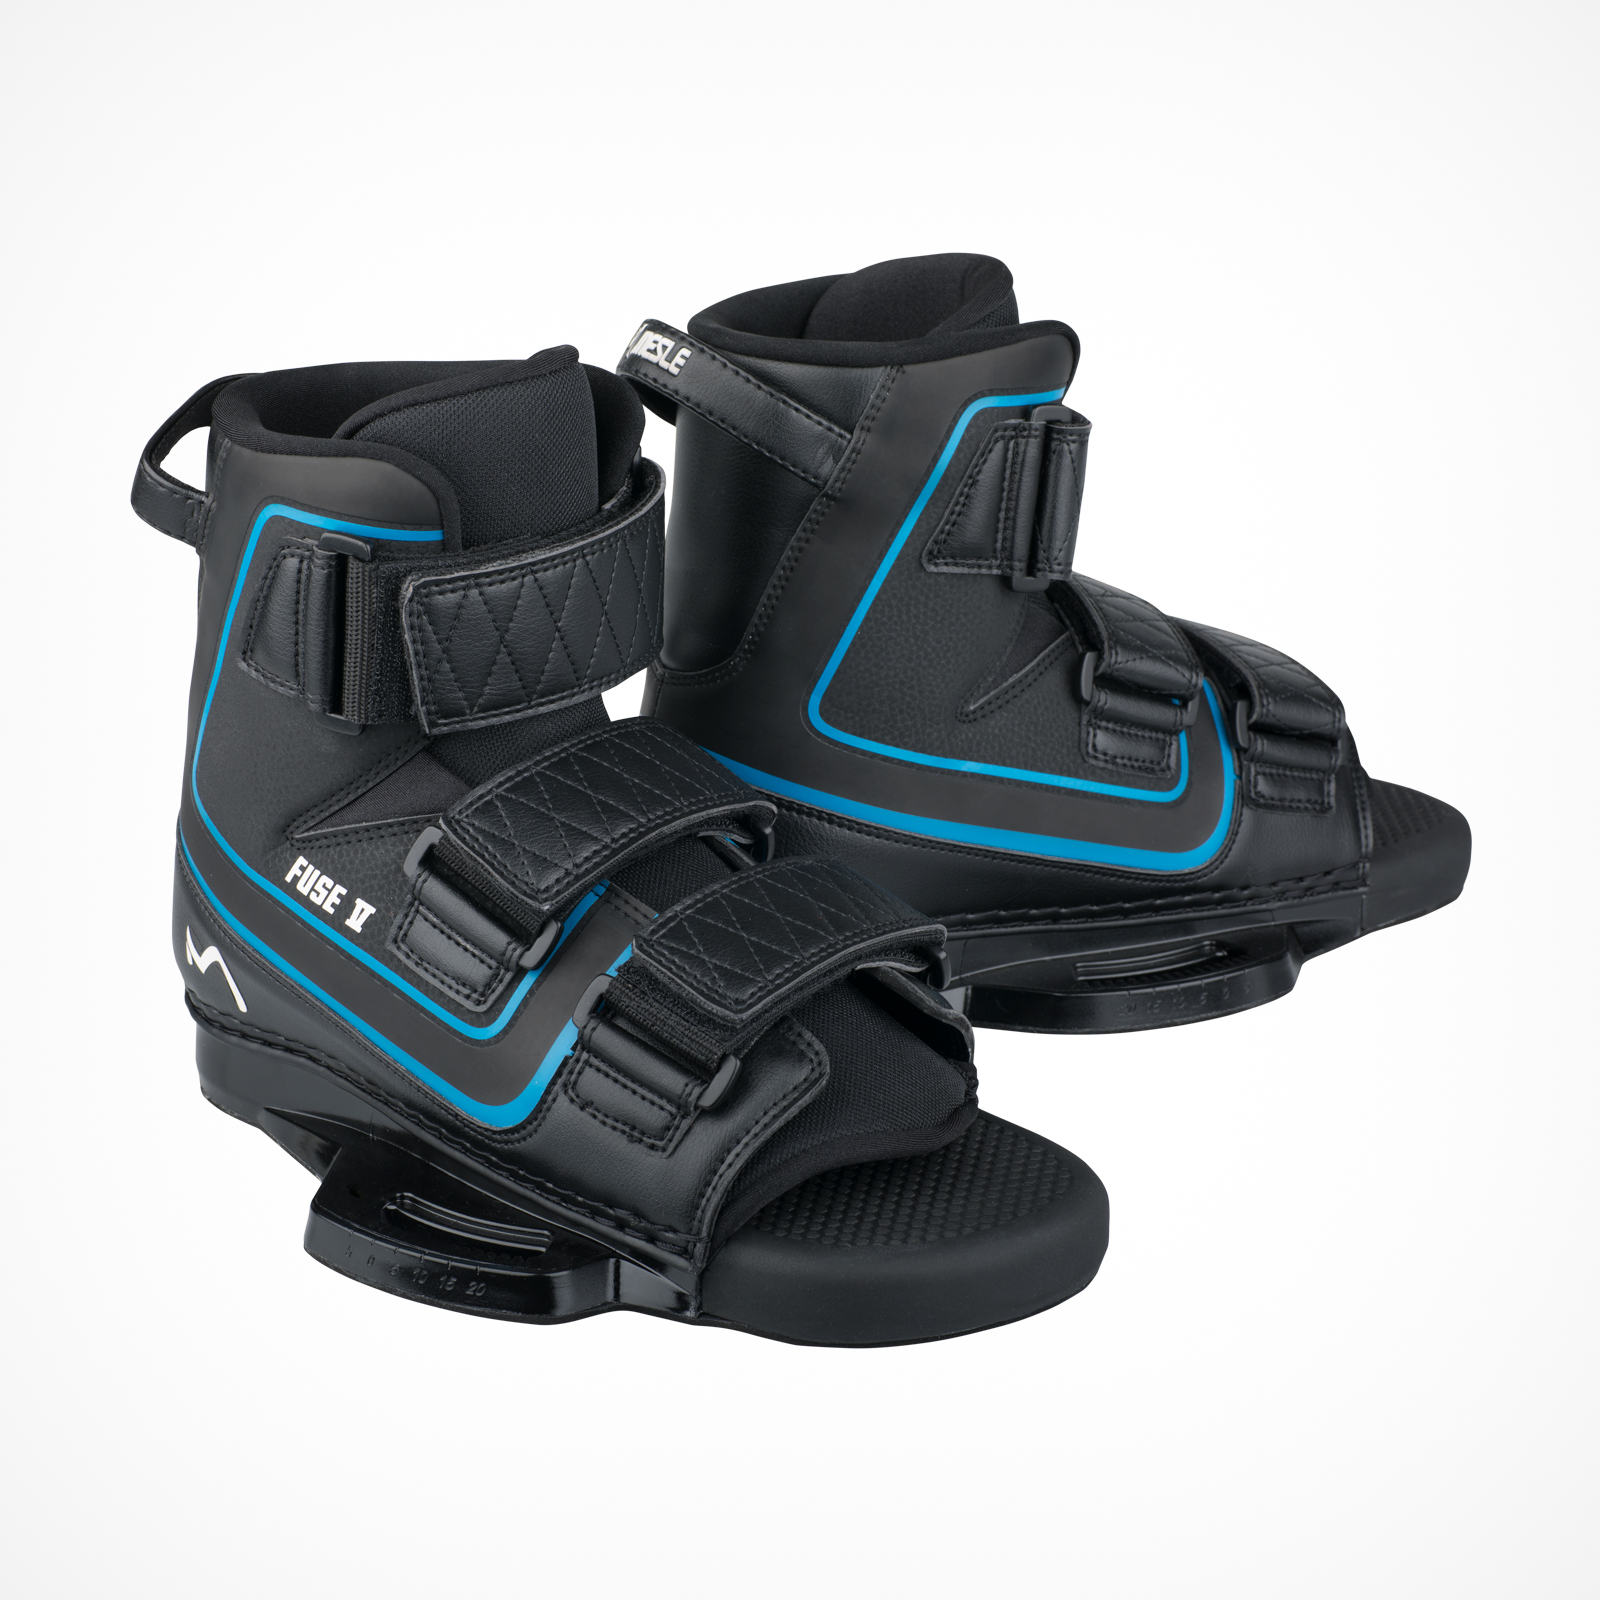 Mesle Wakeboard Bindings Fuse V Open Toe Velcro Binding, color-coded, product image